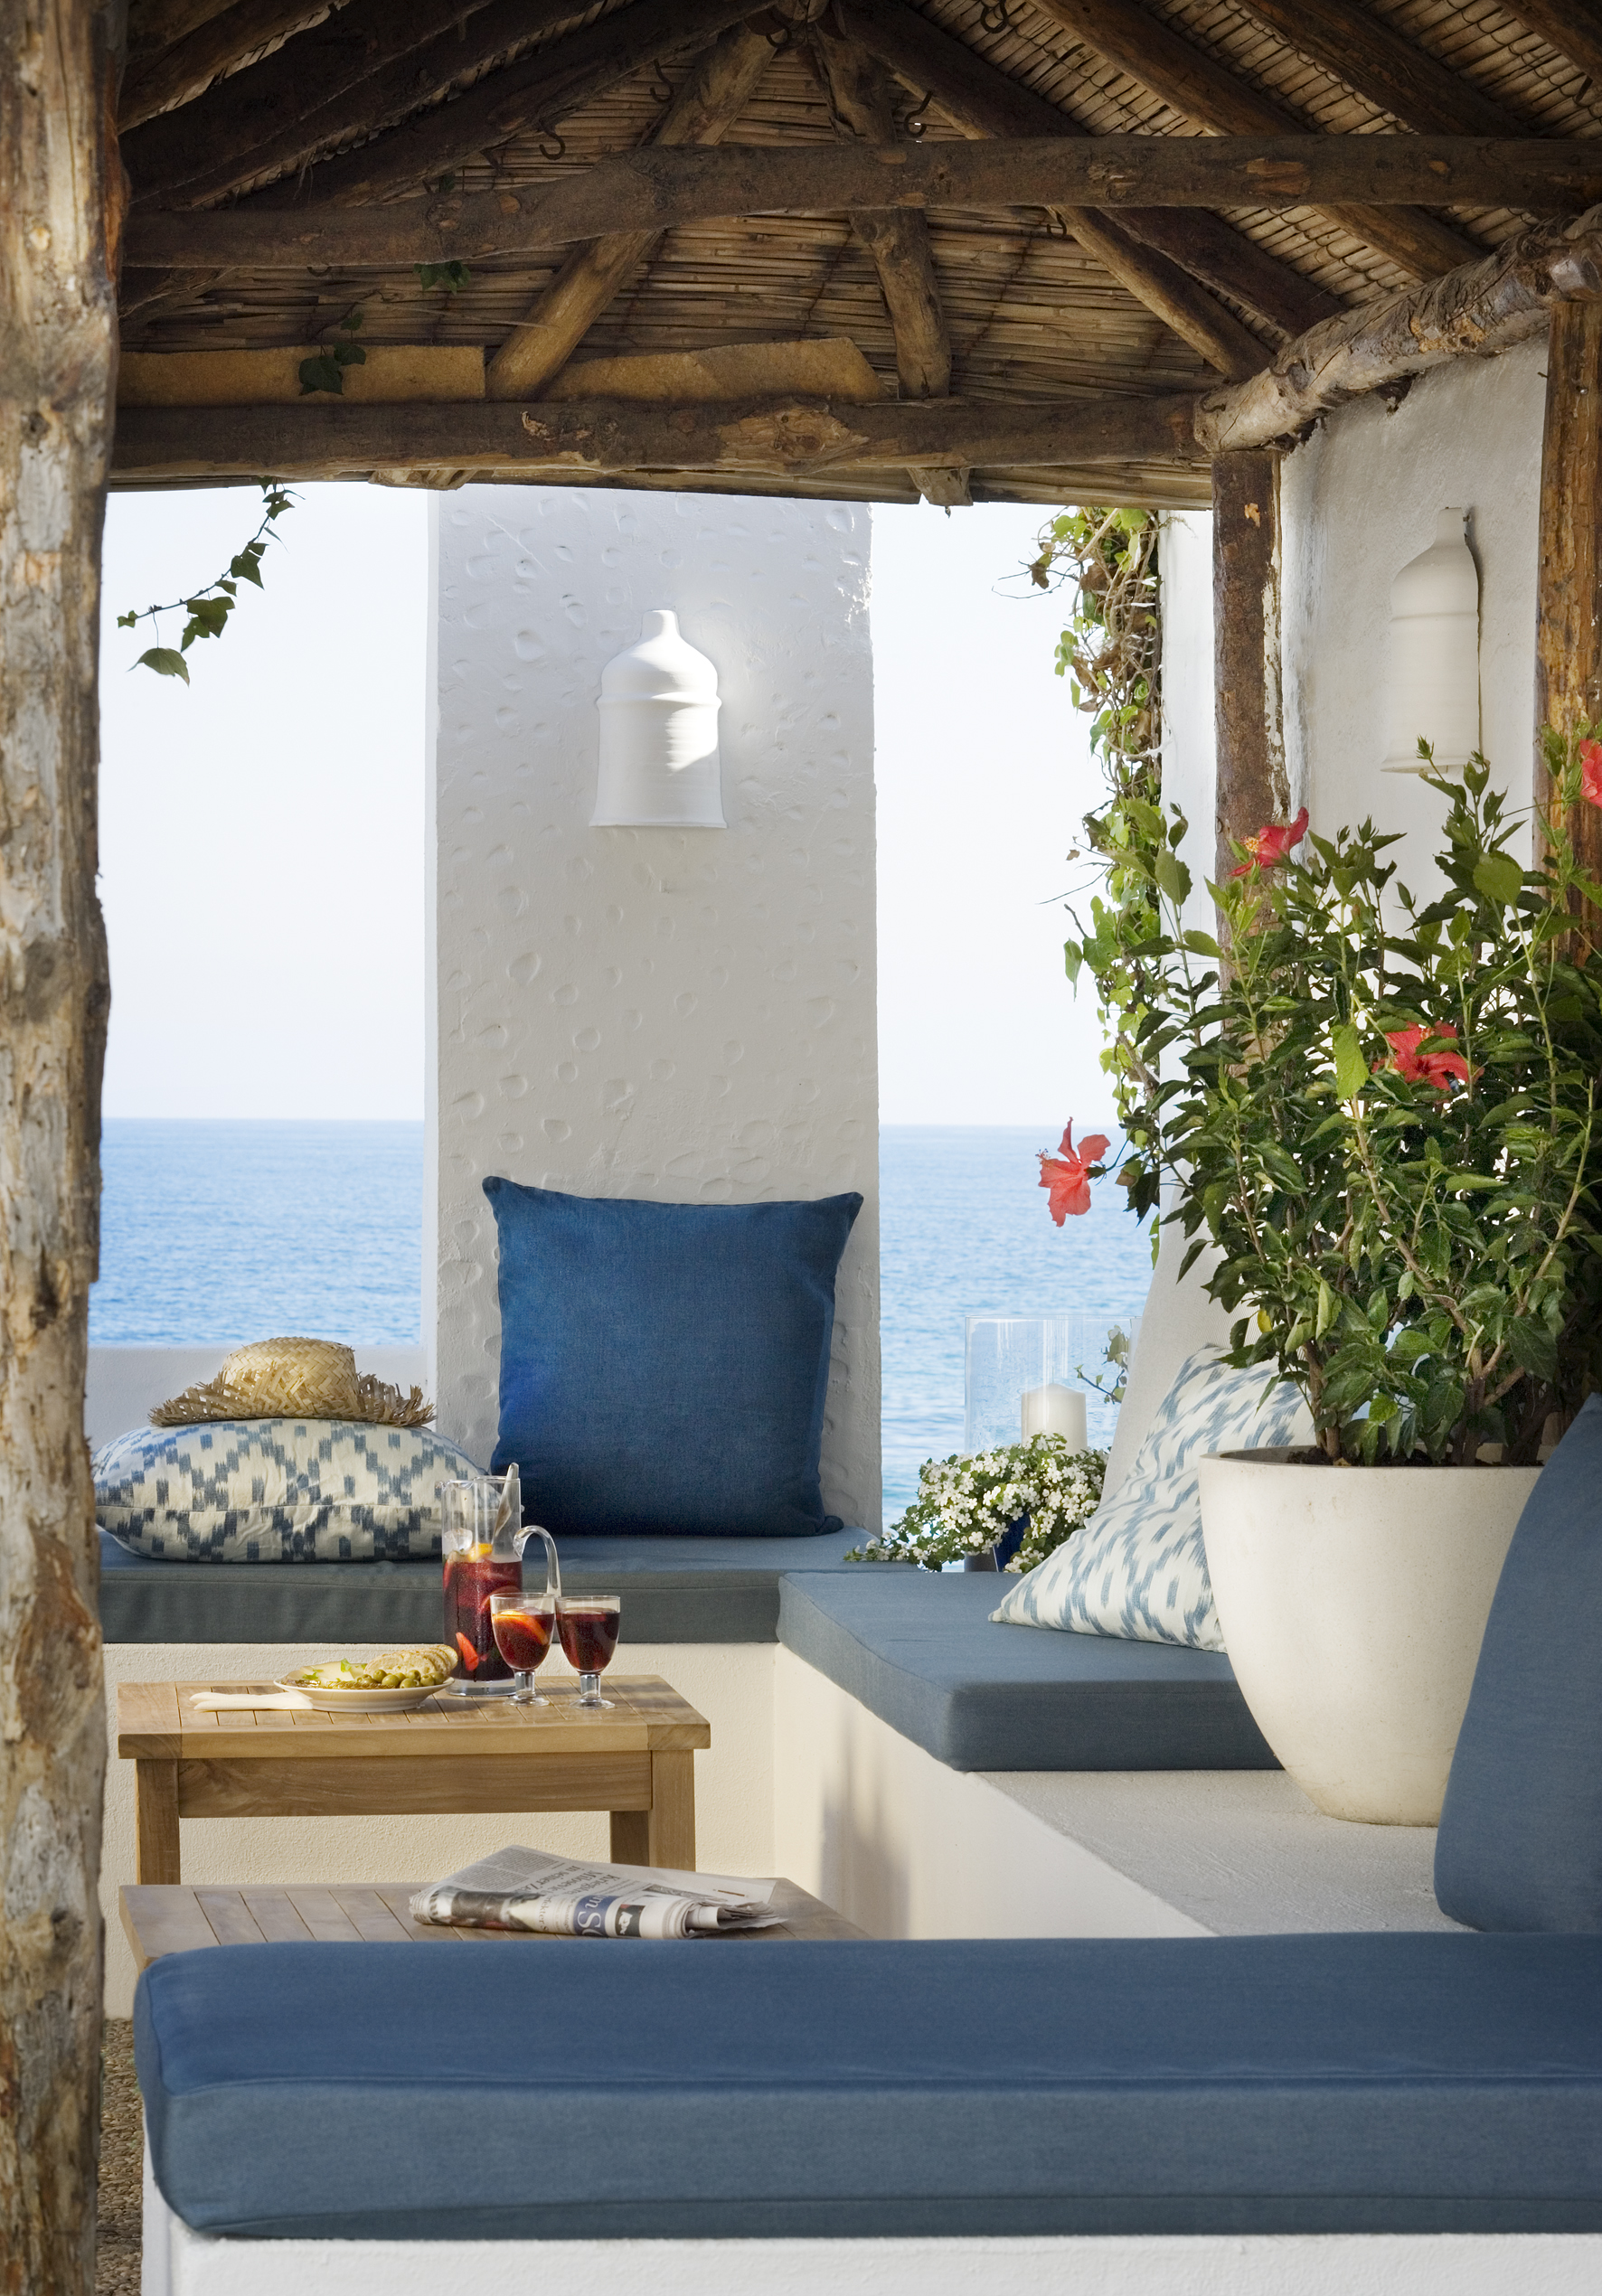 Loungek nsla altan inspiration inredning for Terrace party decoration ideas